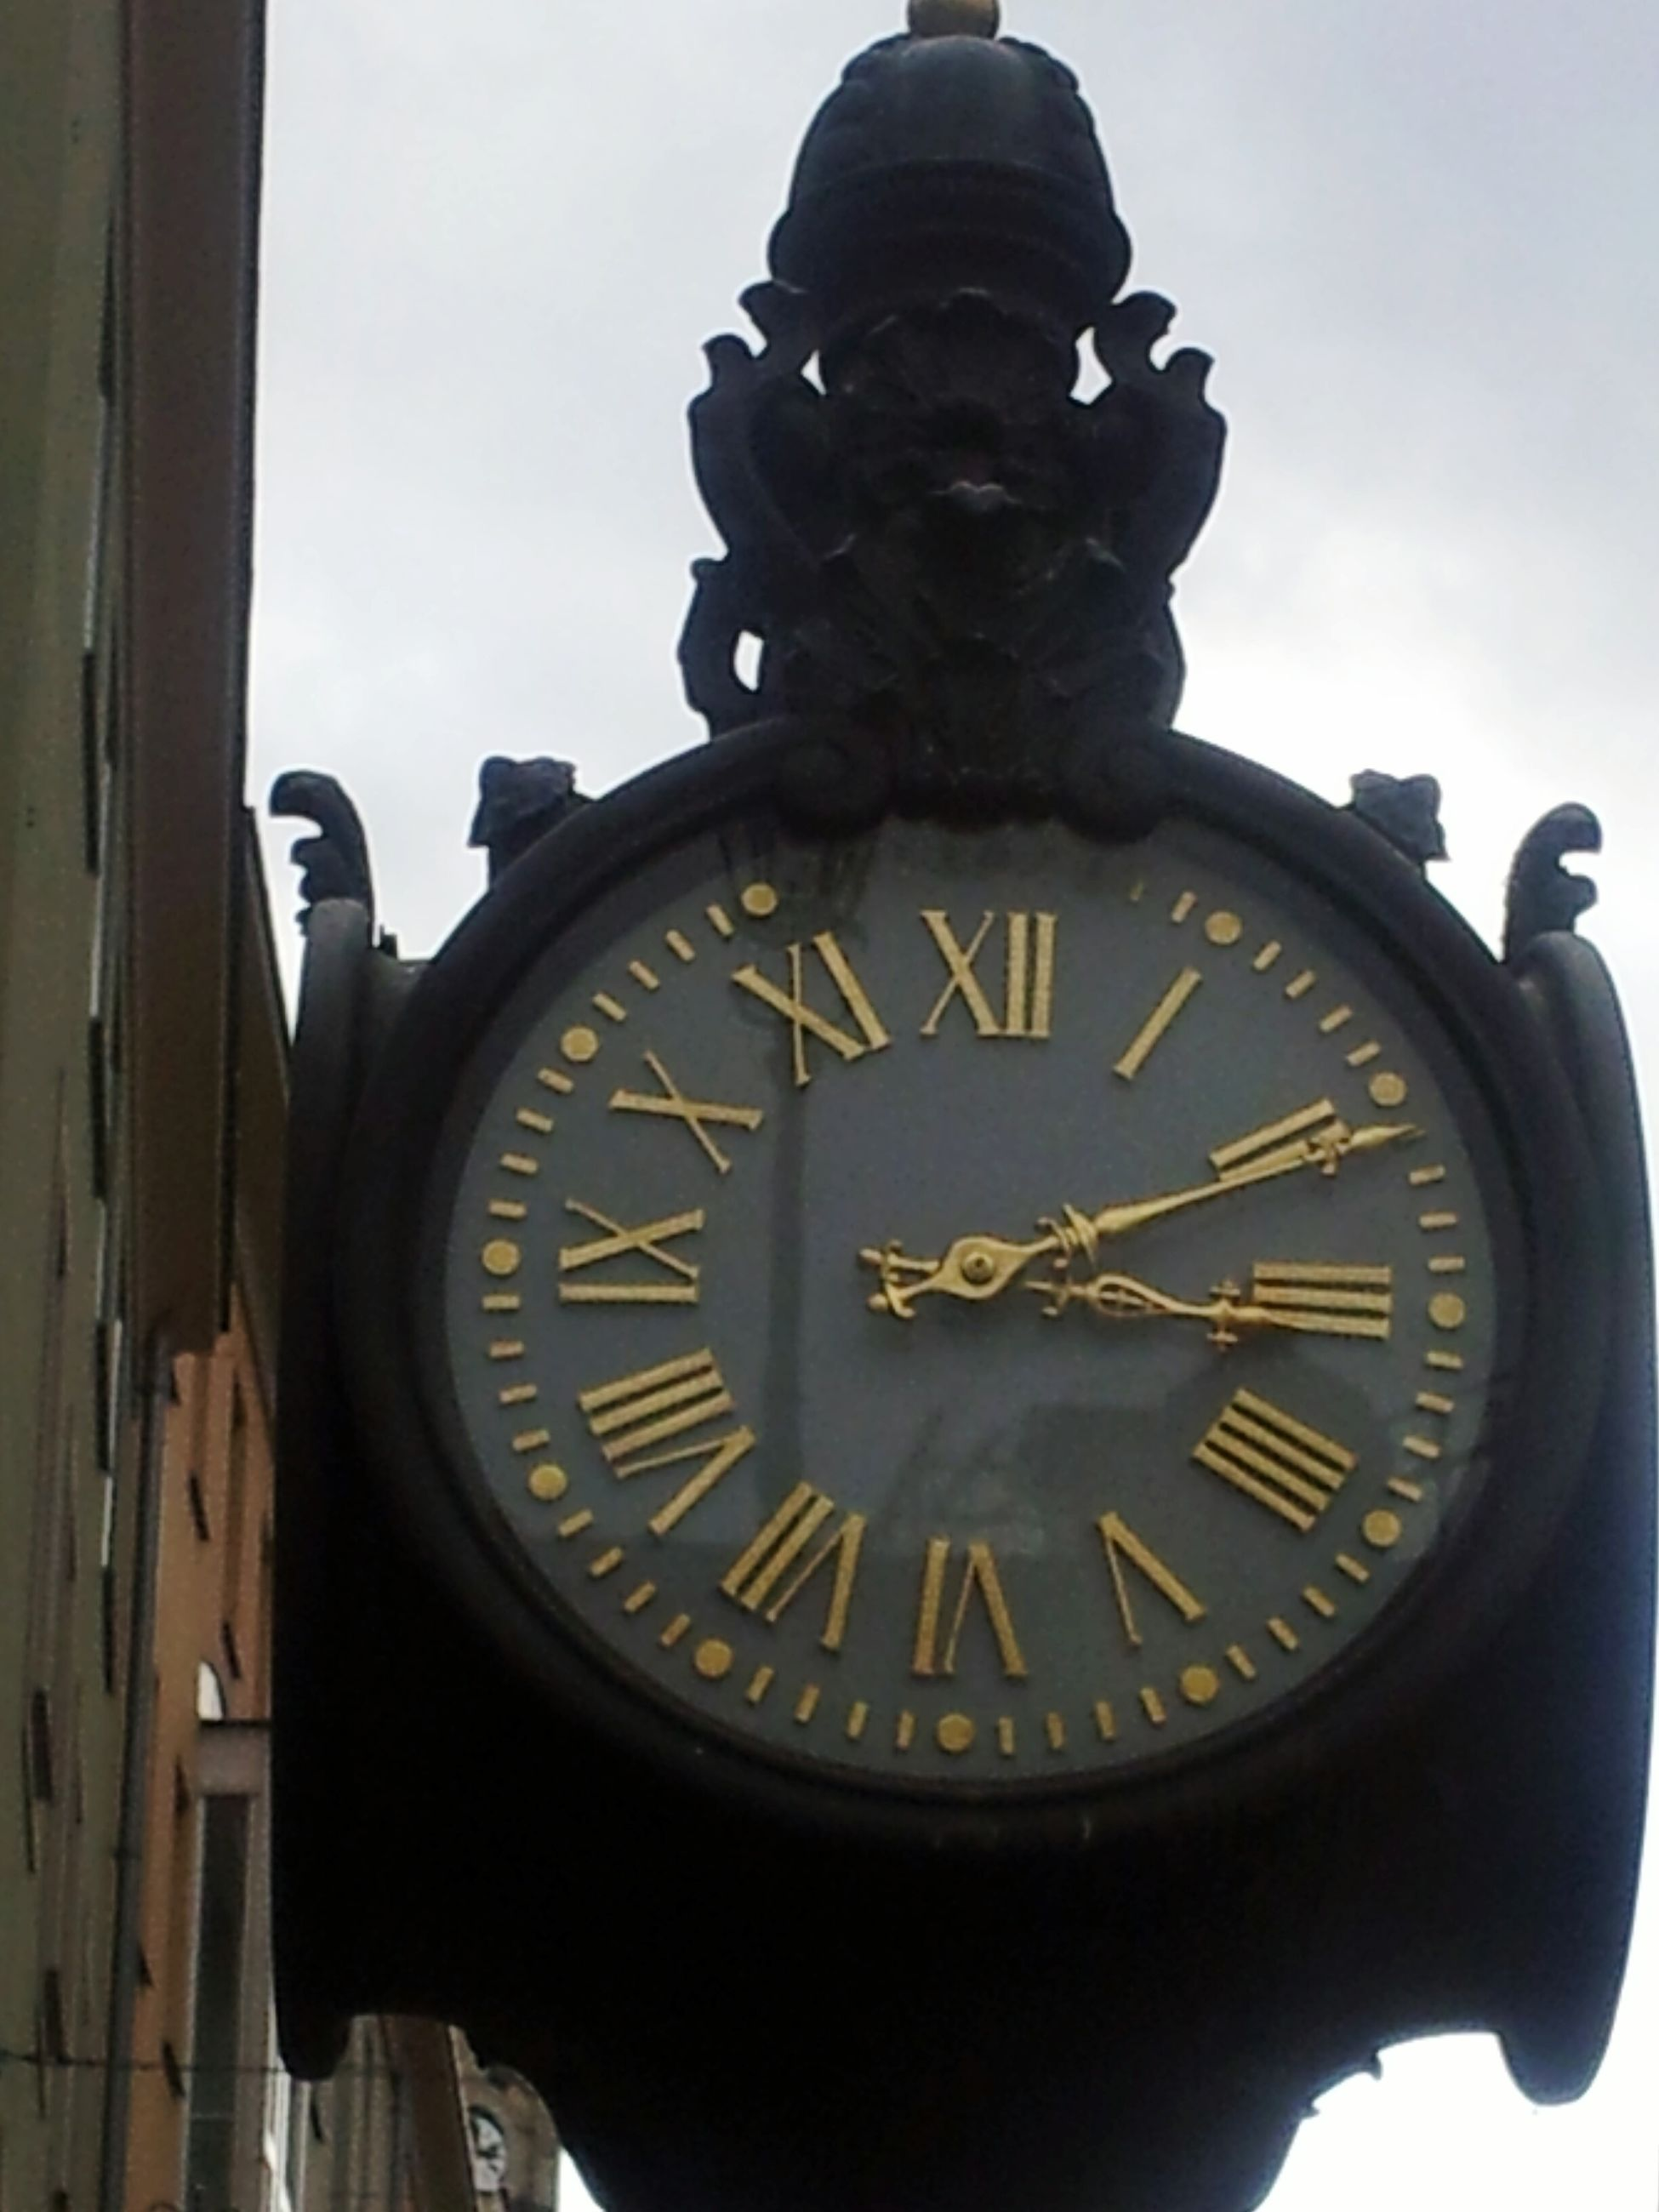 text, communication, clock, time, number, close-up, low angle view, western script, clock face, metal, old-fashioned, no people, old, day, roman numeral, clock tower, wall clock, guidance, antique, instrument of time